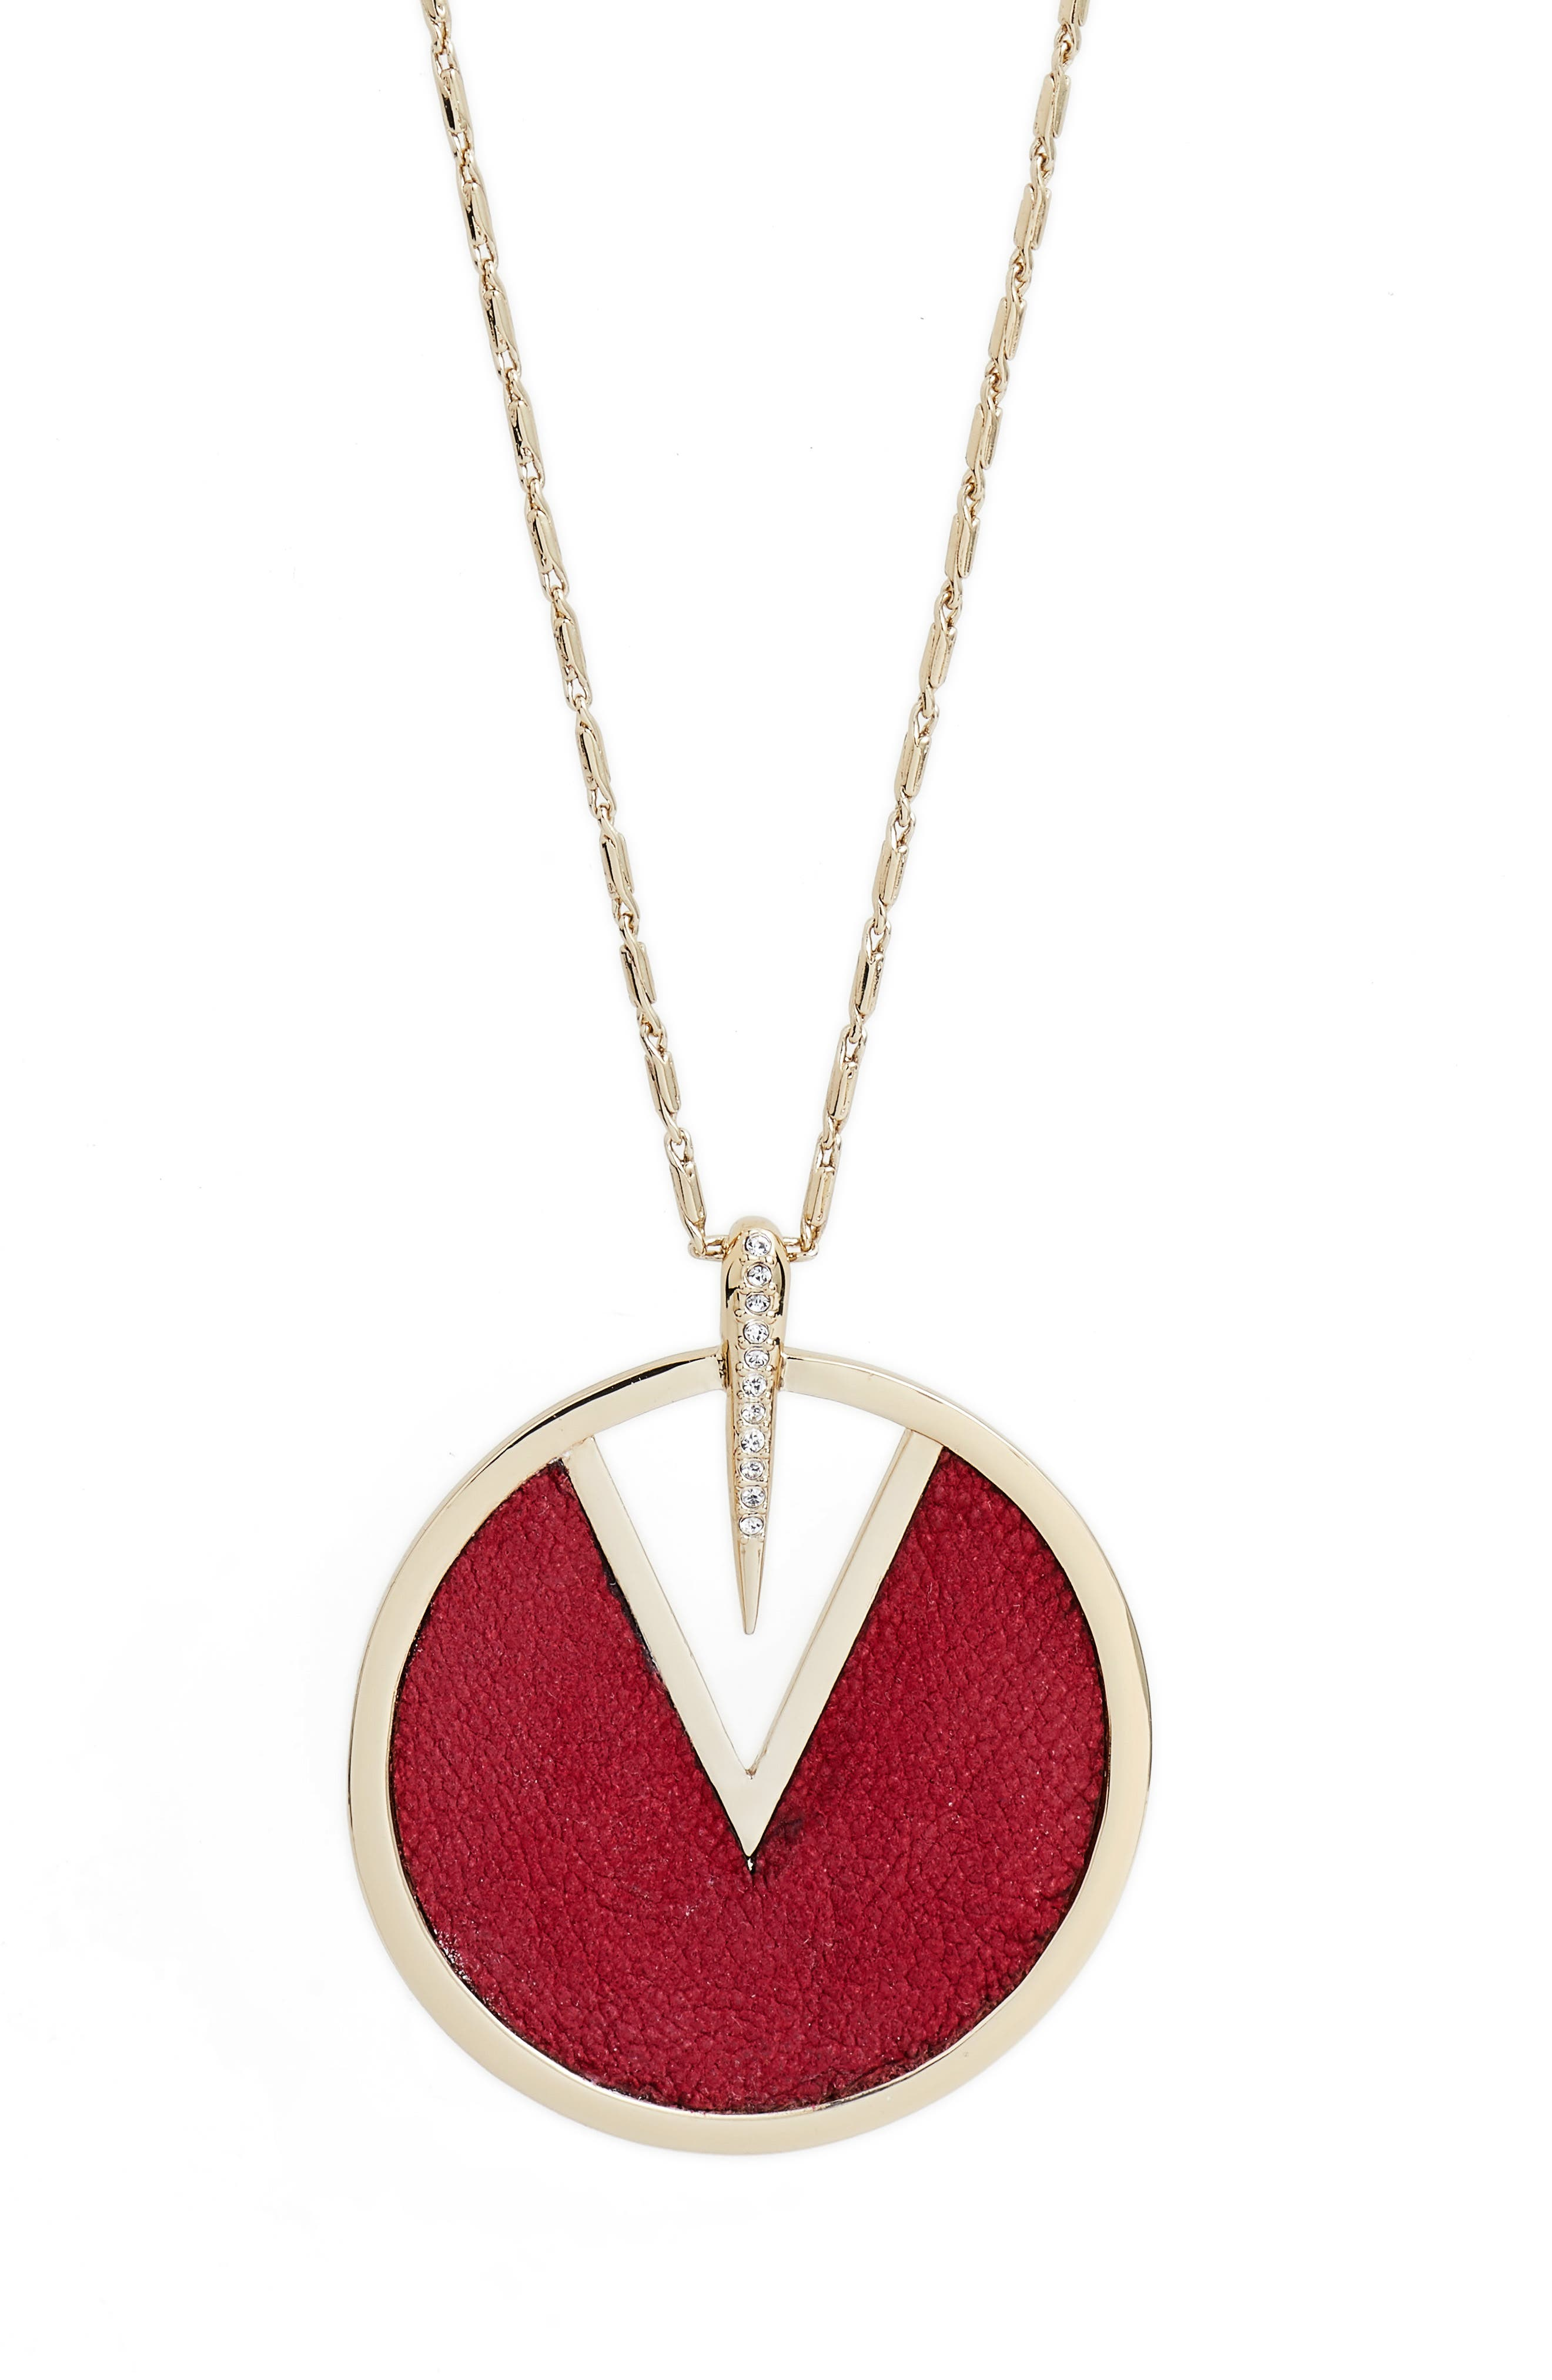 Inlaid Leather Pendant Necklace,                             Alternate thumbnail 6, color,